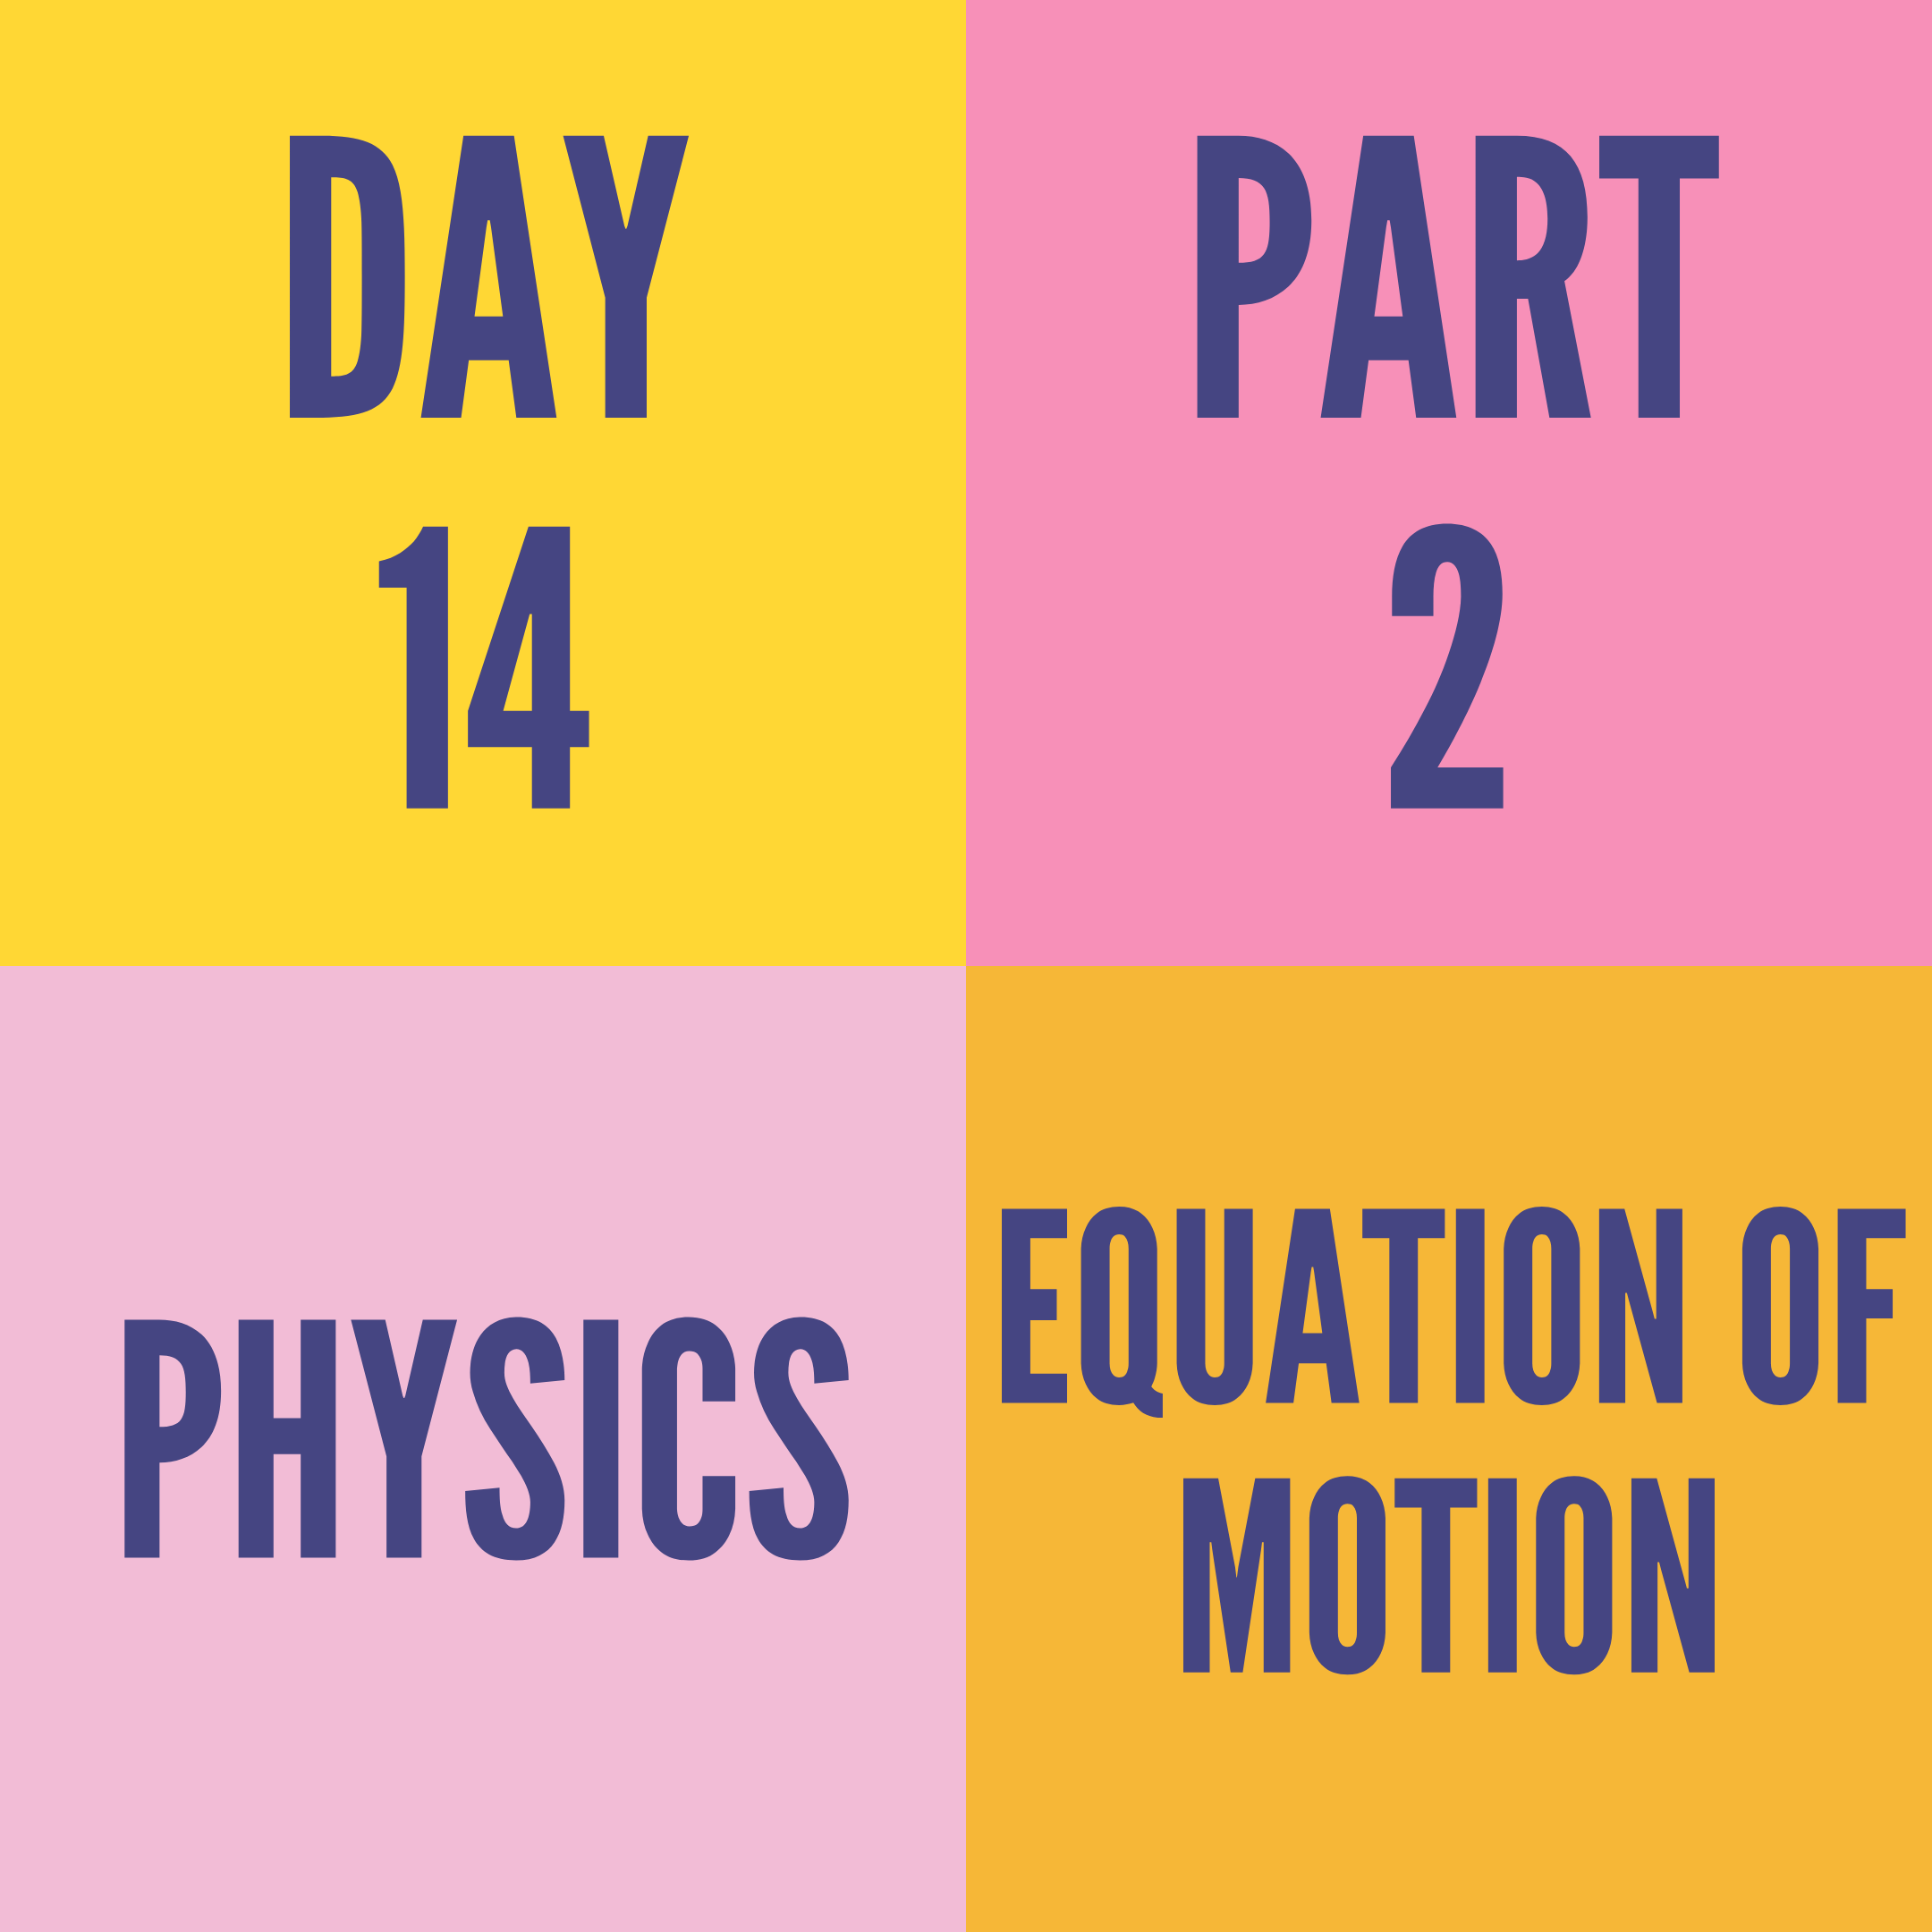 DAY-14 PART-2 EQUATION OF MOTION